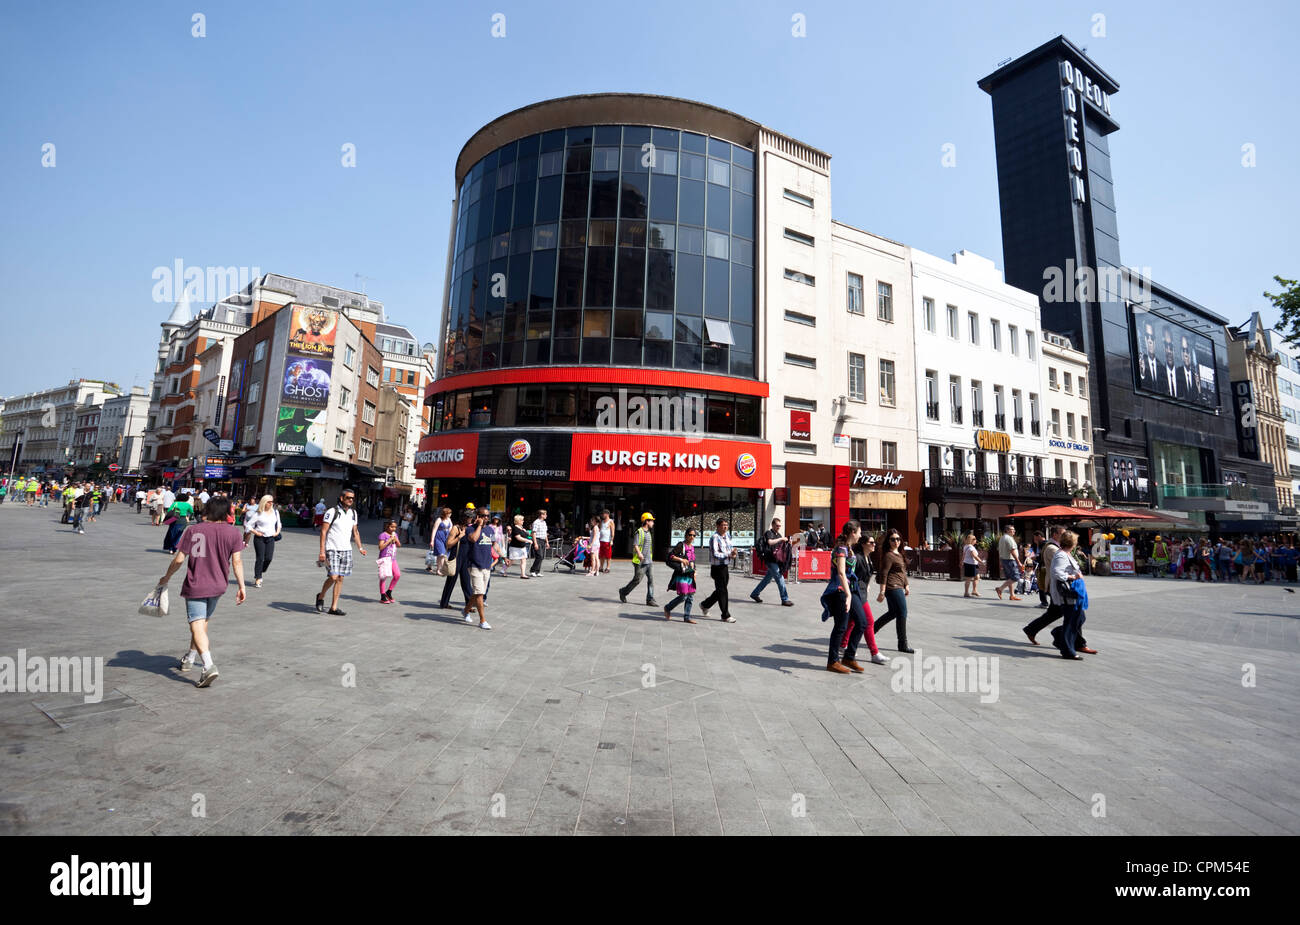 Leicester Square daily city life, London, England, UK - Stock Image